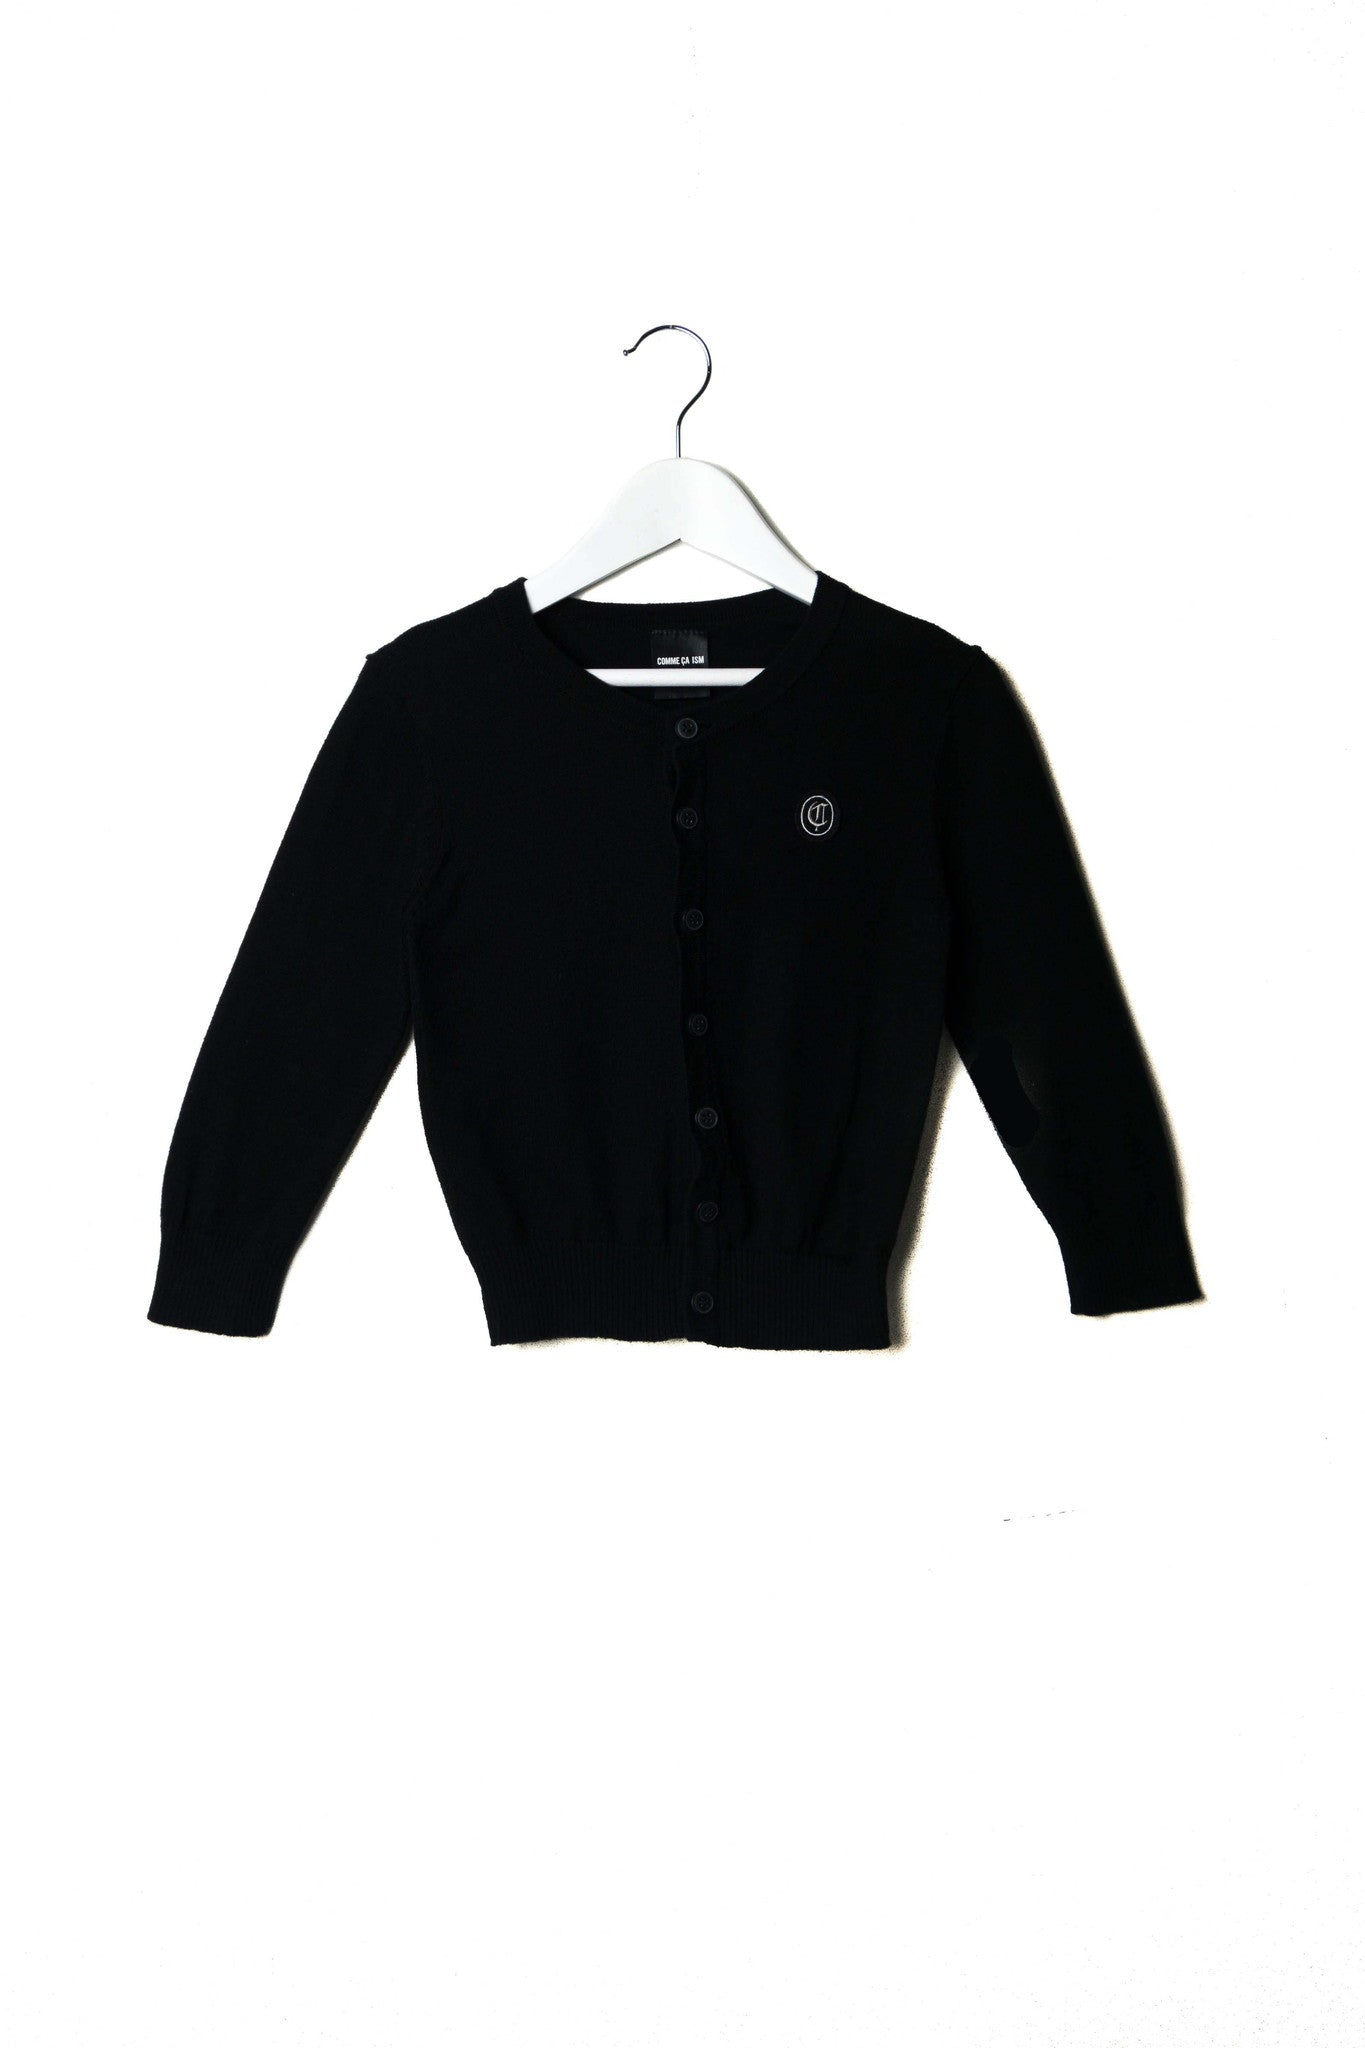 10002499 Comme Ca Ism Kids~Cardigan 4-5T (110 cm) at Retykle